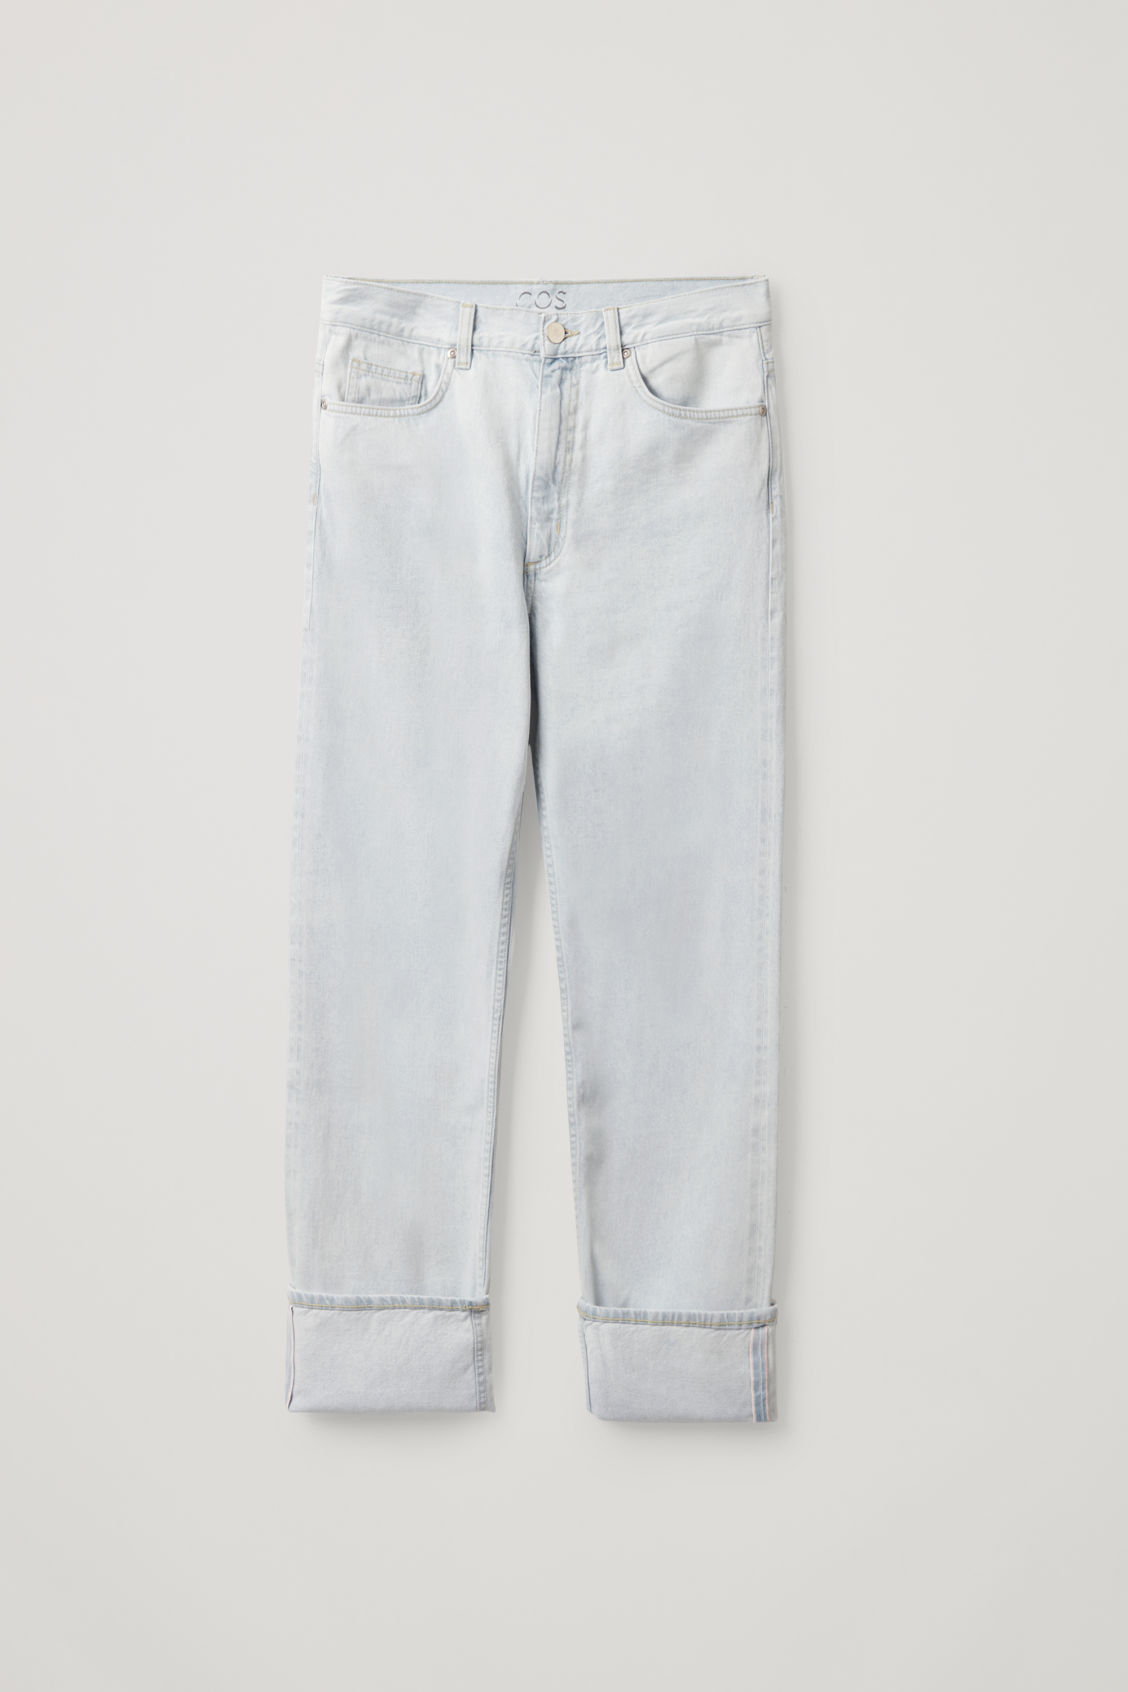 Cos Straight Organic Cotton Turn-up Jeans In Blue